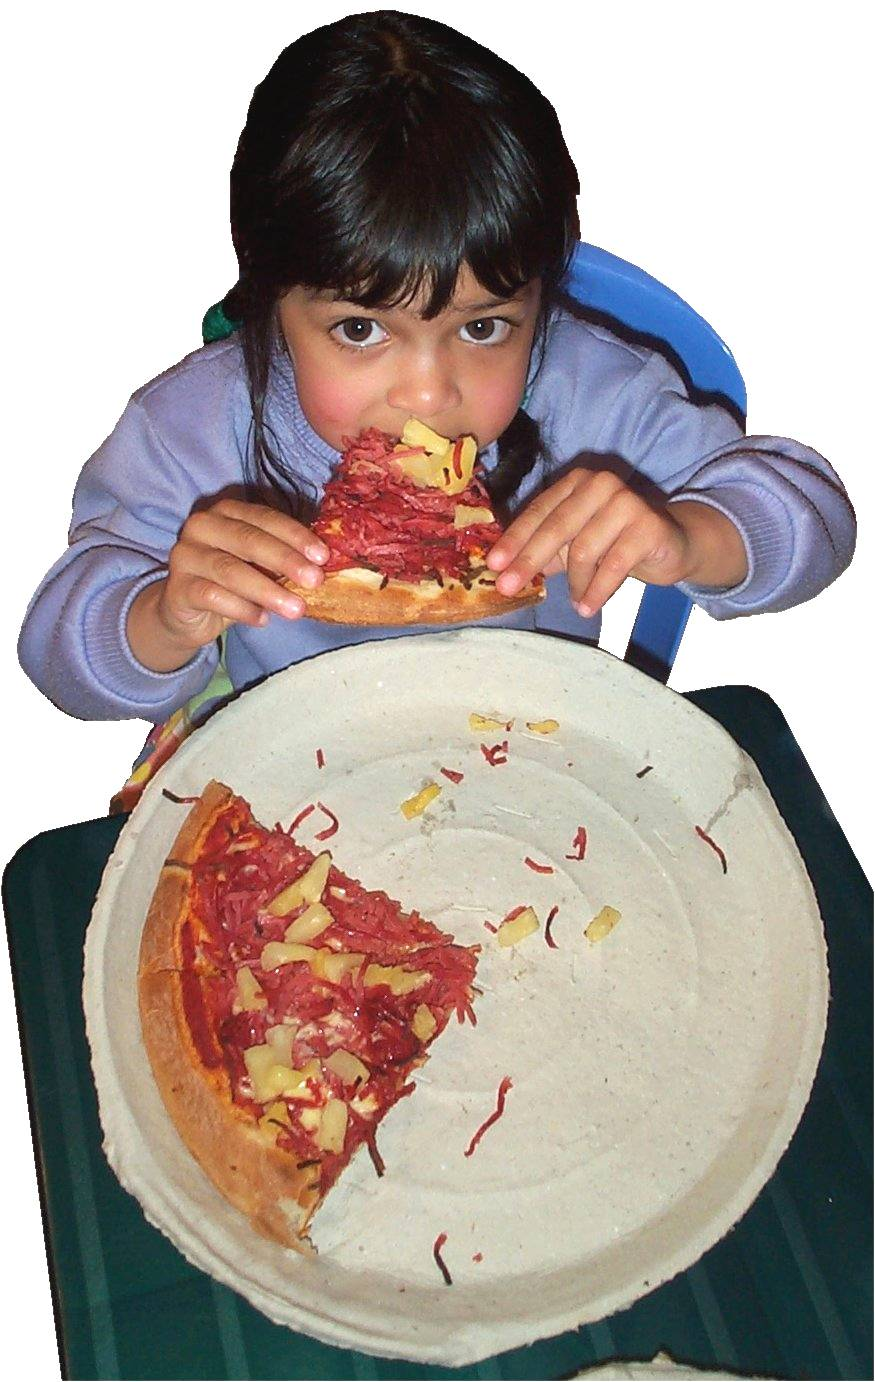 Eating pizza2.jpg